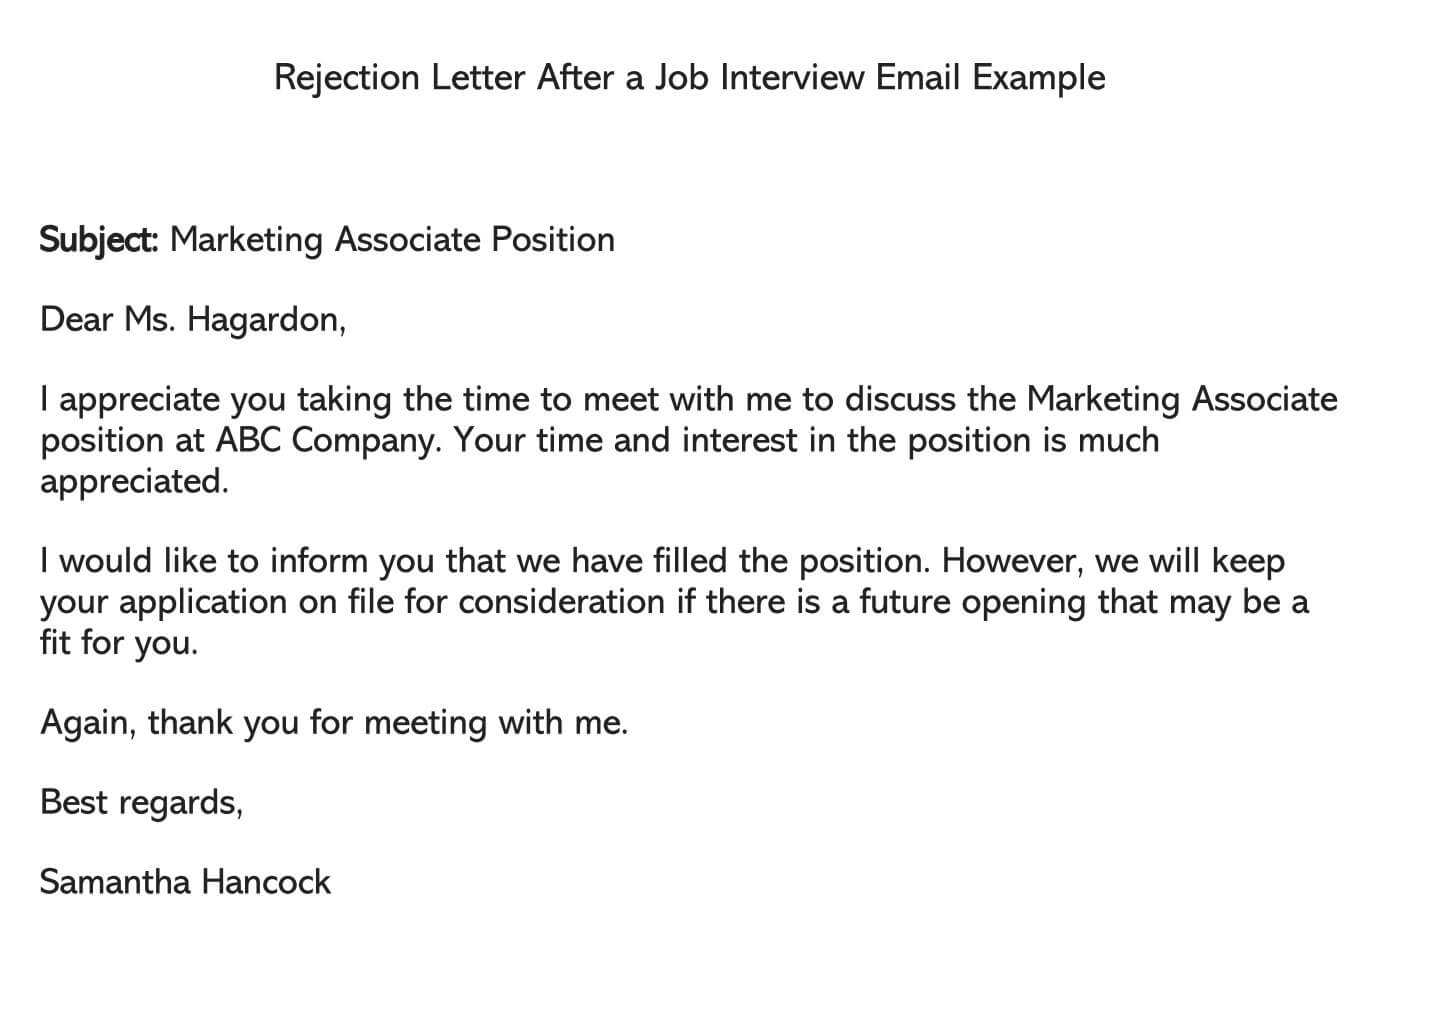 Rejection Letter After a Job Interview Email Example